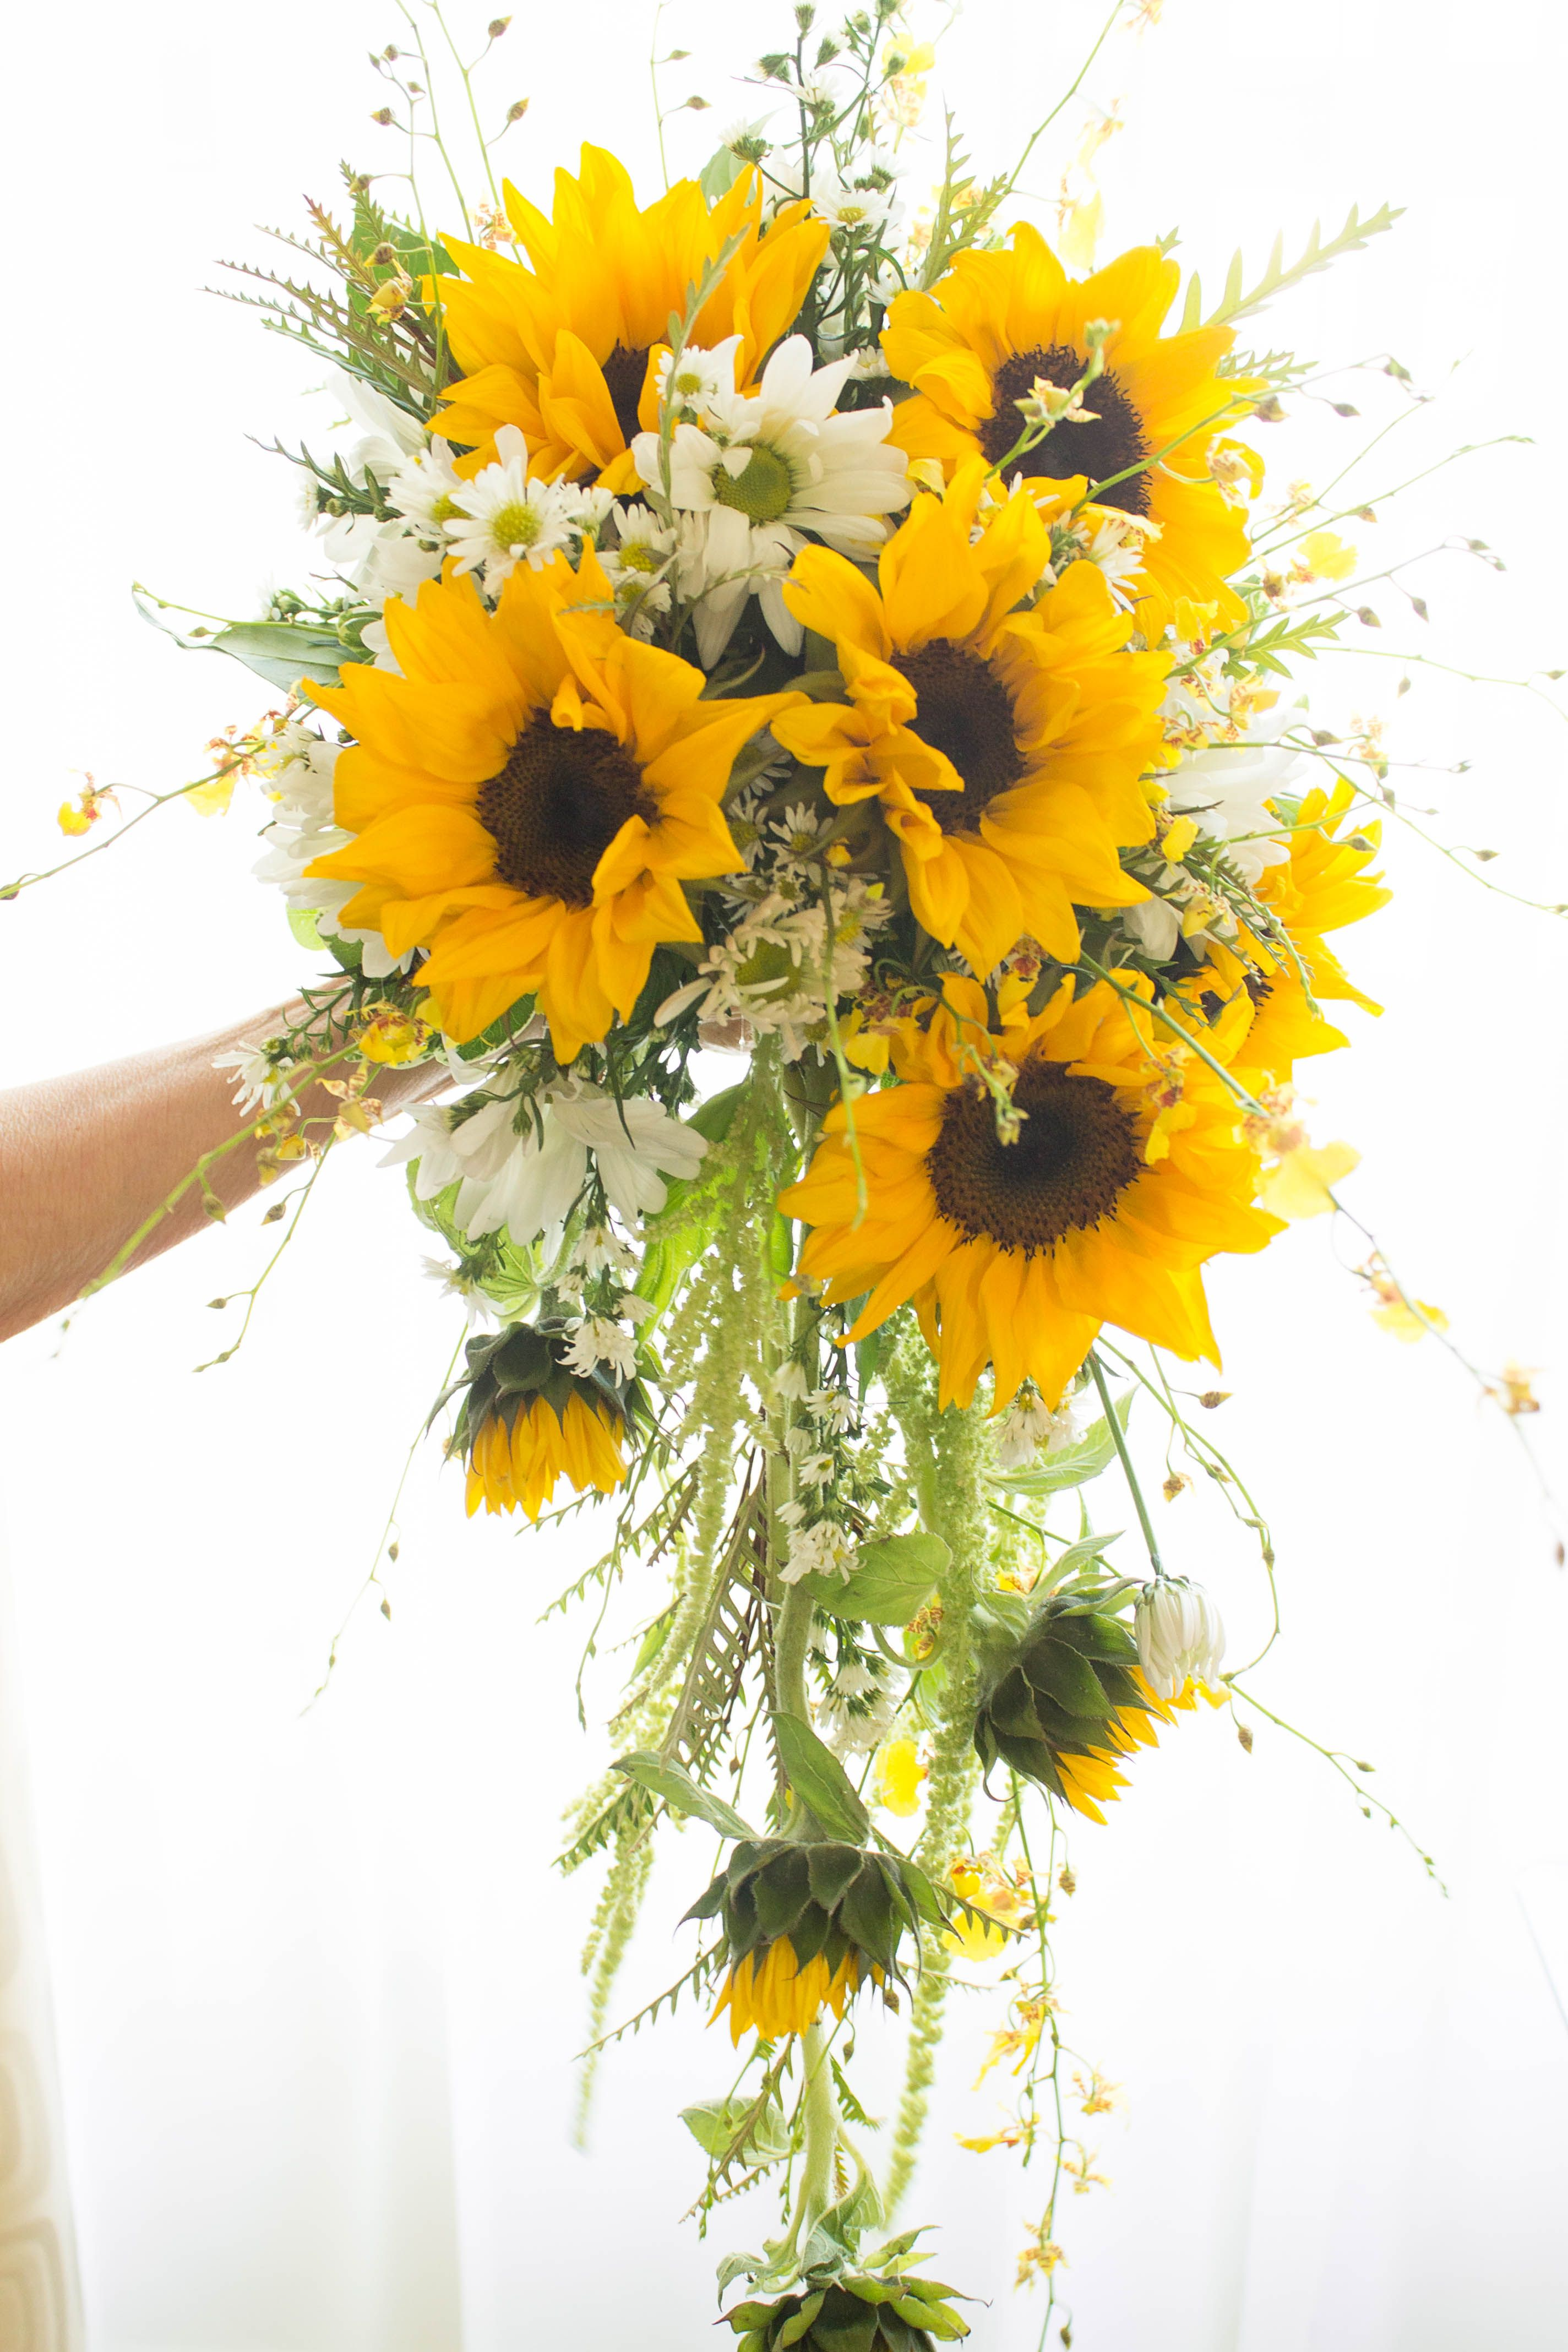 Cascading Bouquet designed with Oncidium orchids, sunflowers and greenery.  Designed by CS Events and Floral.  Las Vegas, NV.